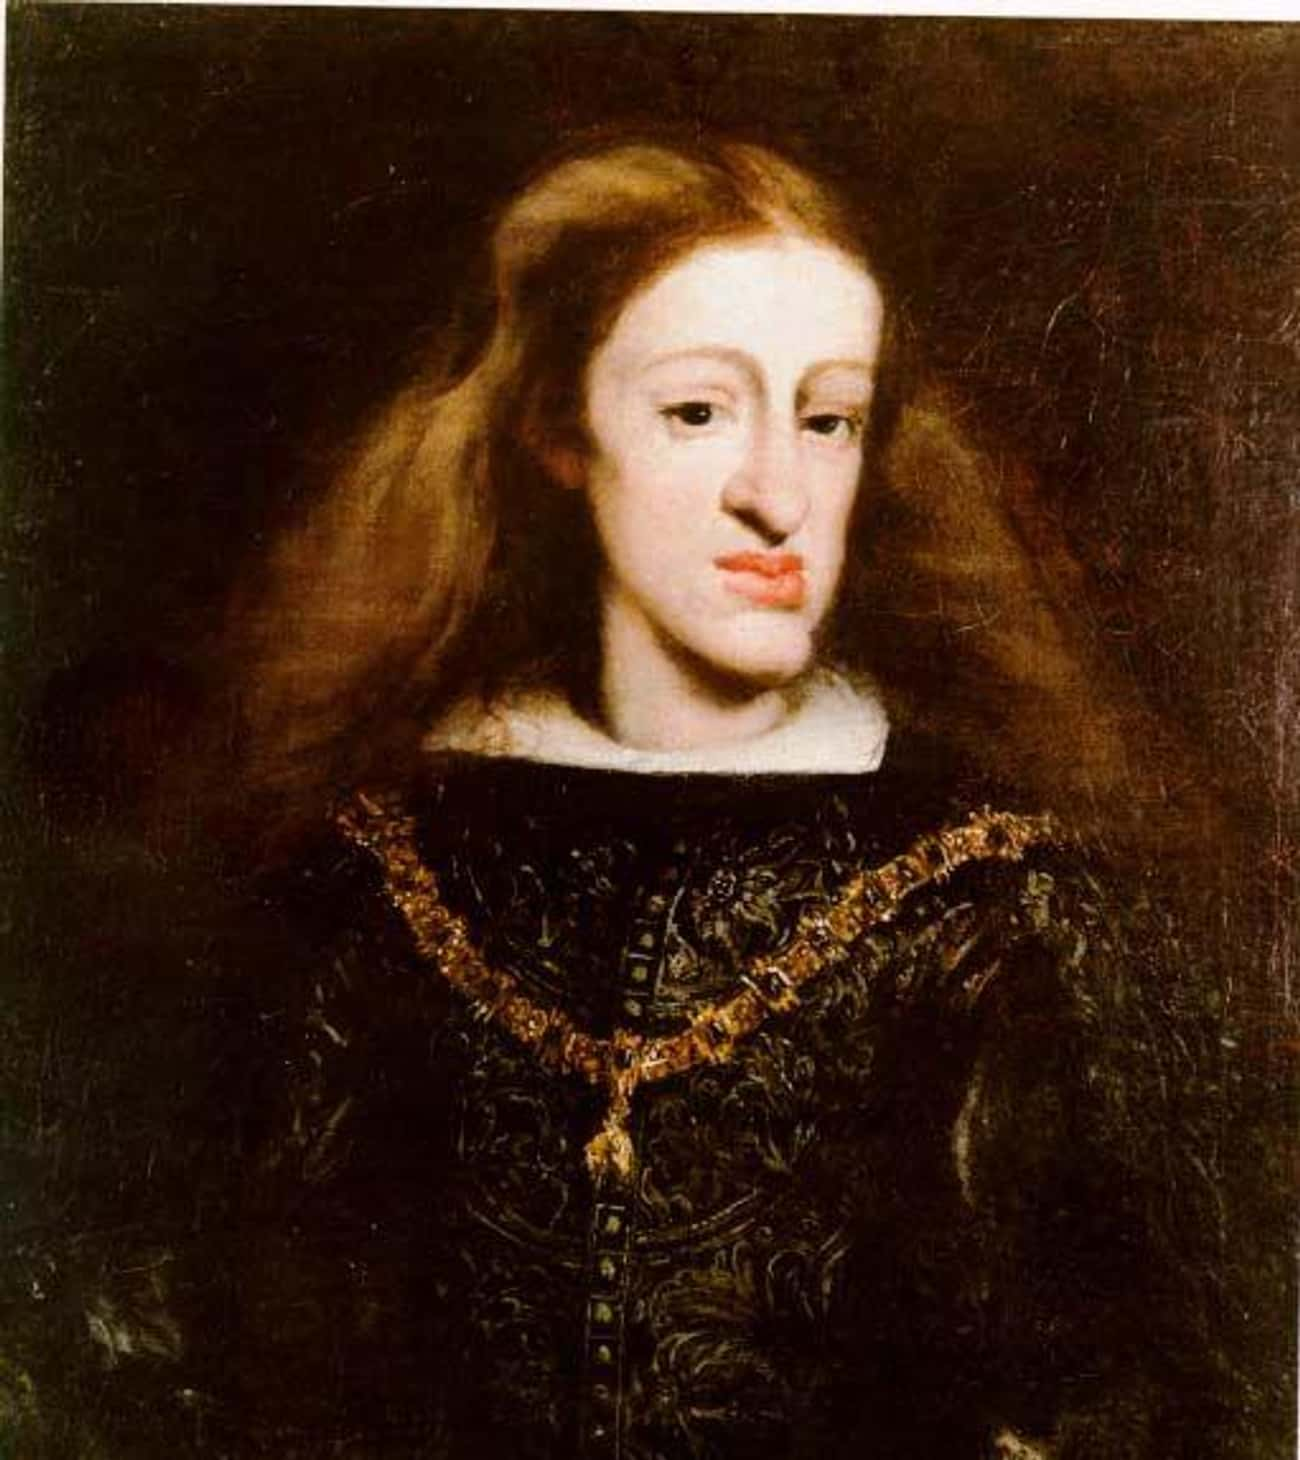 Charles II Had A Massive, Droo is listed (or ranked) 1 on the list Royals Who Suffered From Hereditary Mutations And Defects Caused By Inbreeding